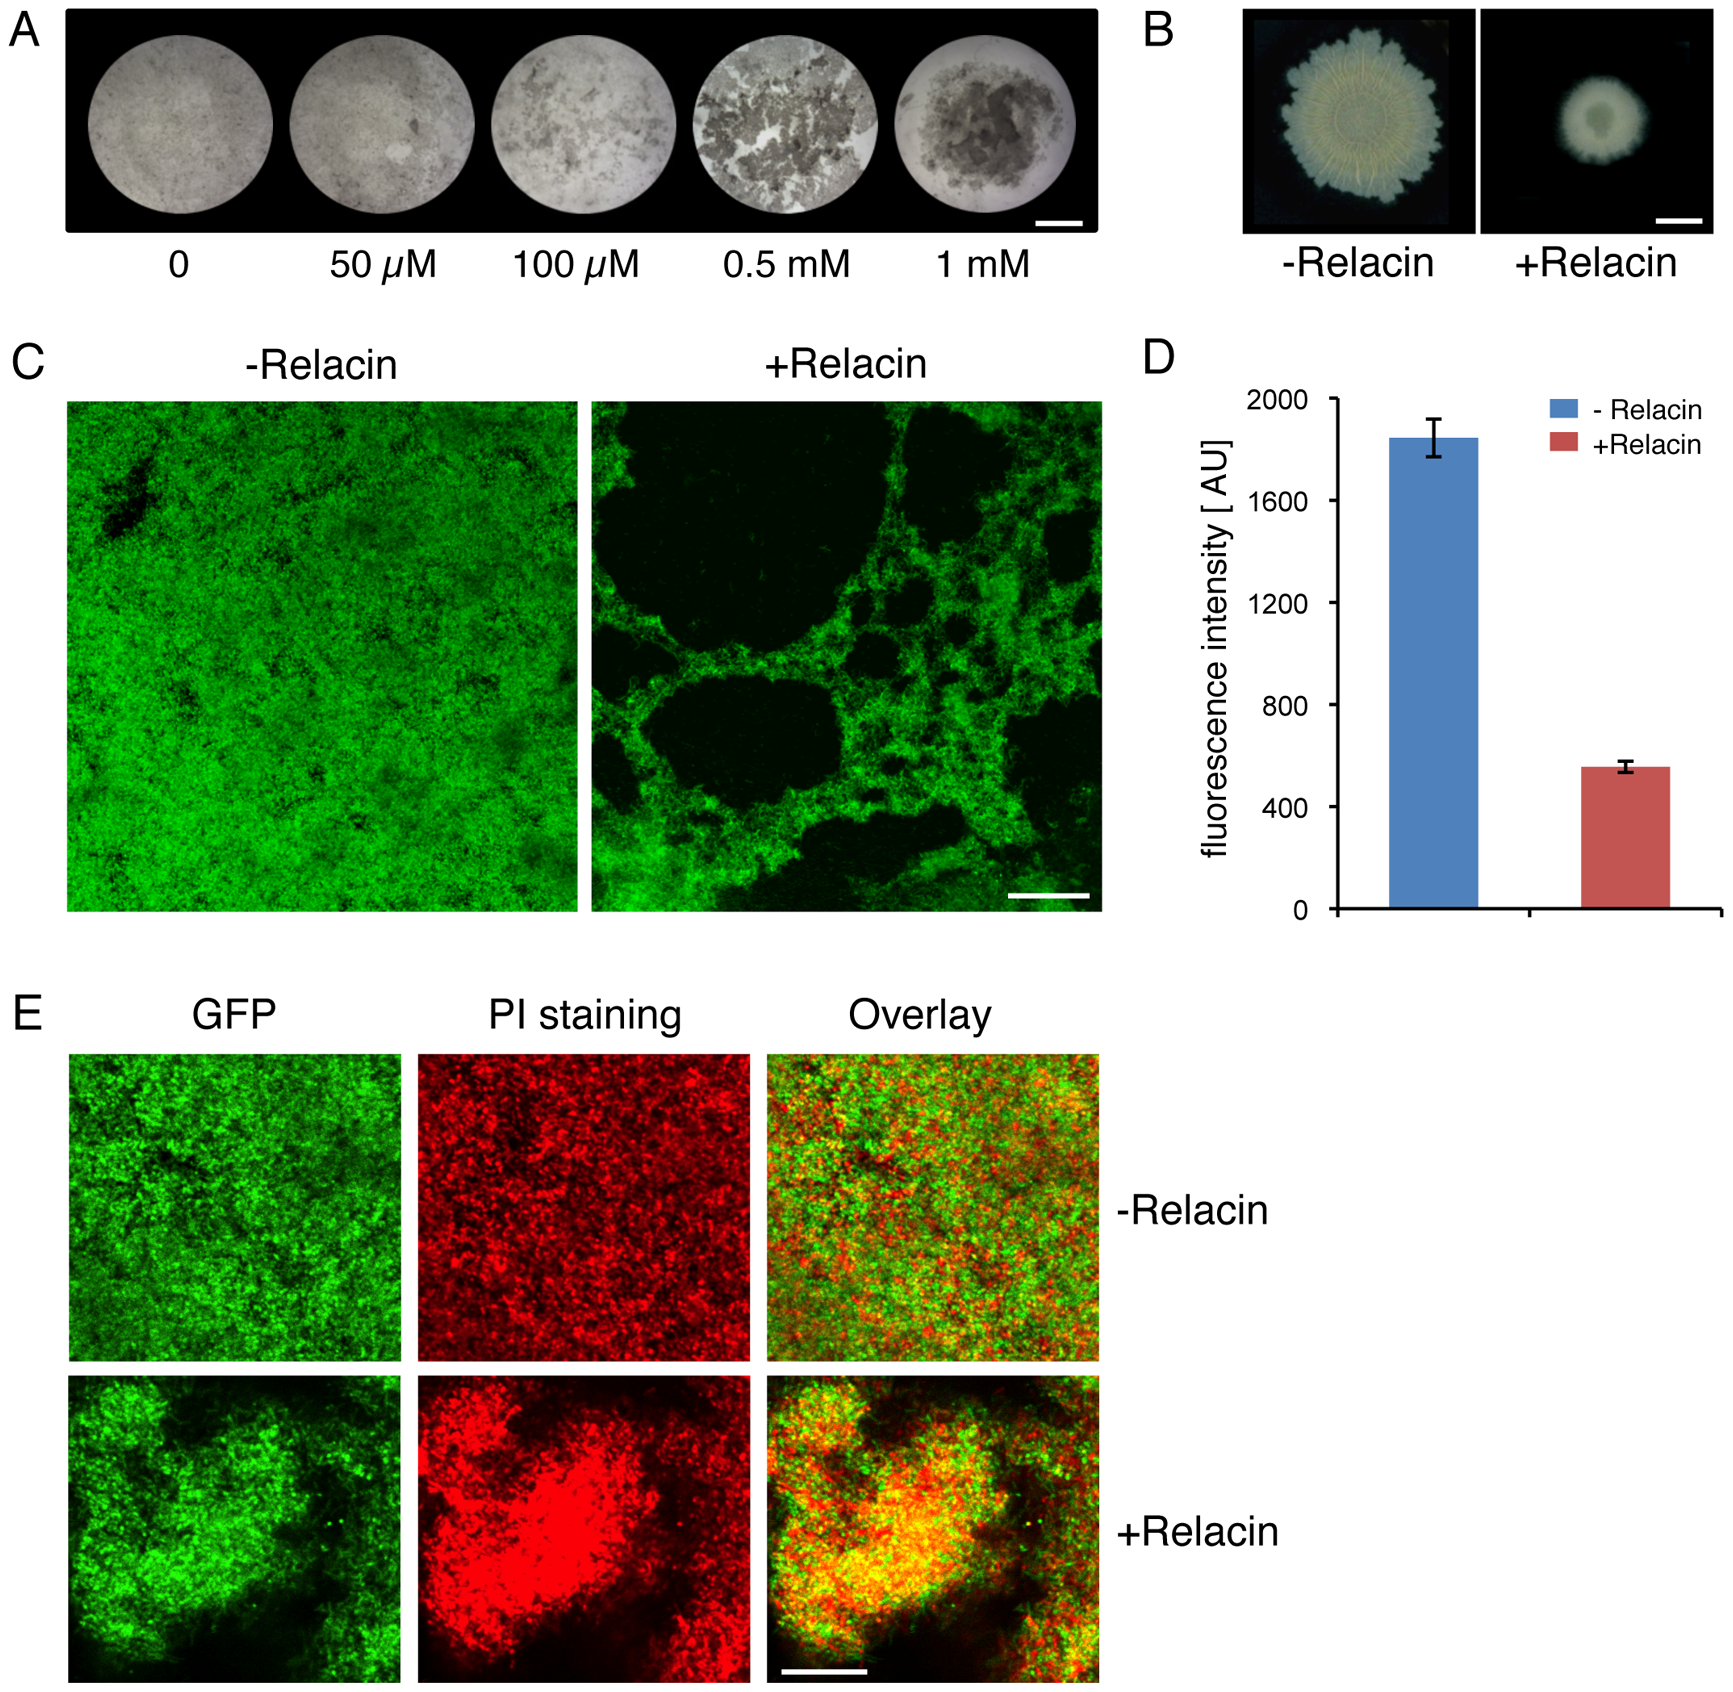 Relacin affects biofilm formation in <i>Bacillus subtilis.</i>